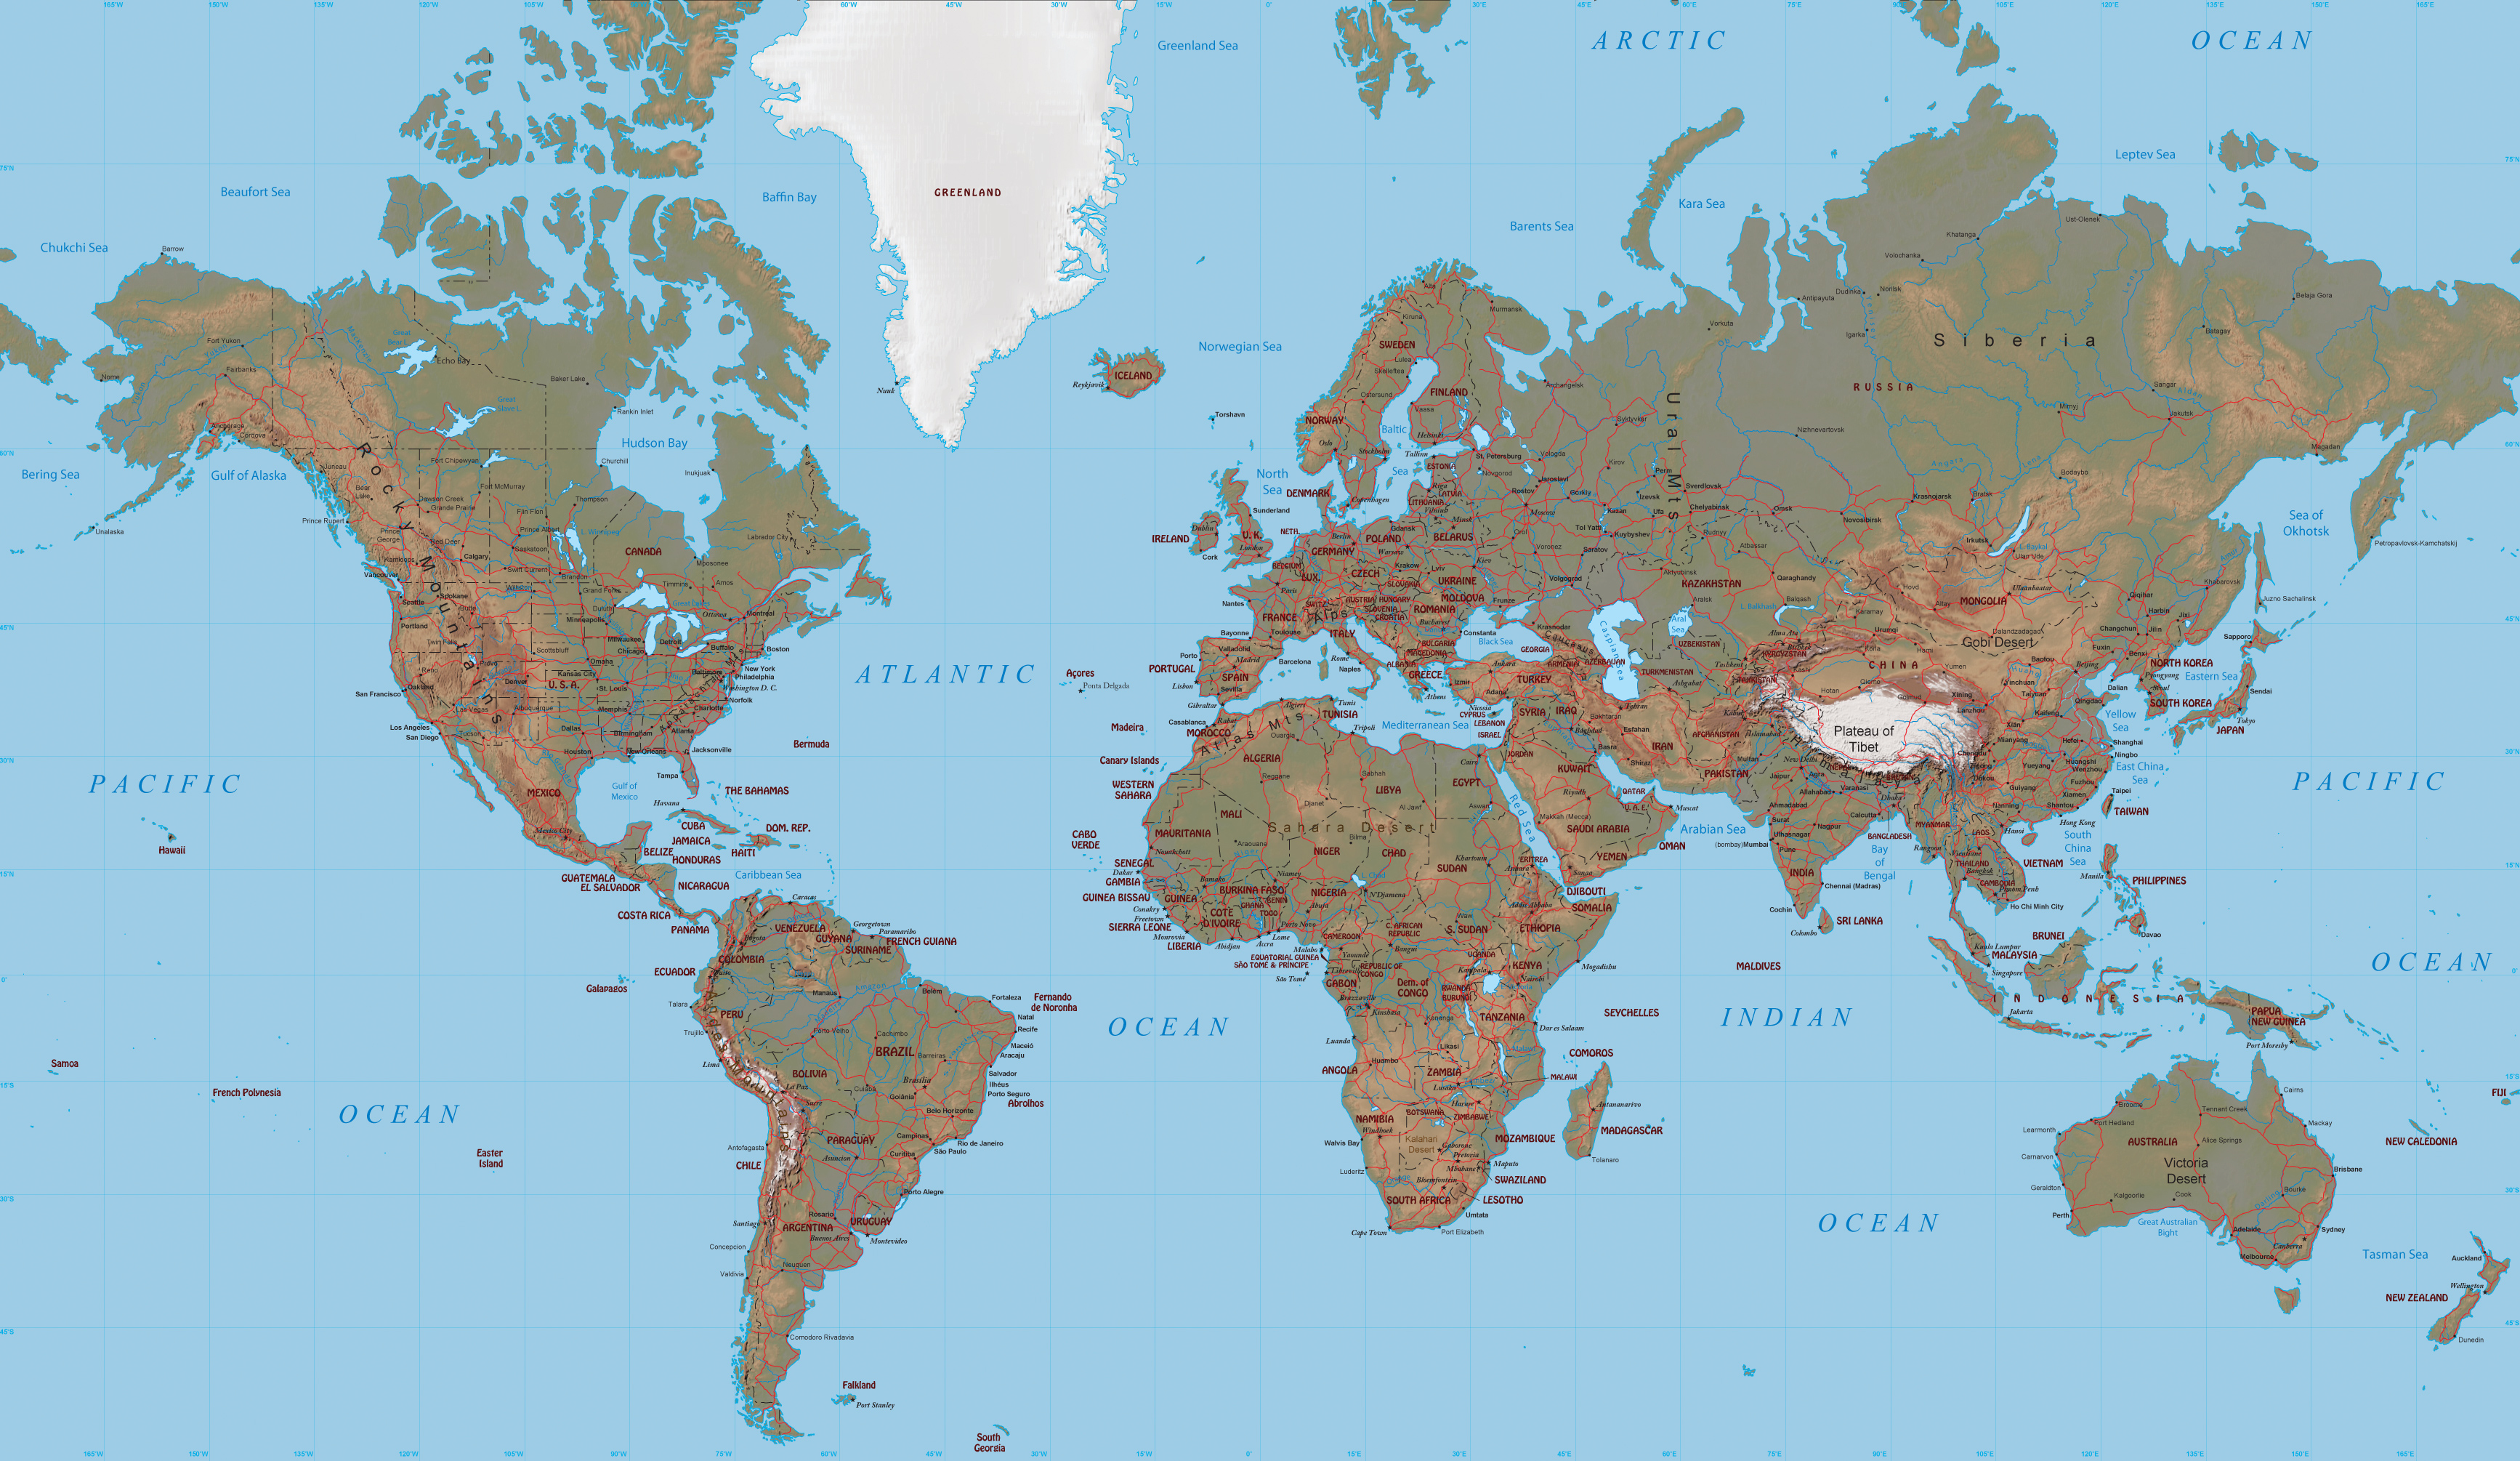 """Mercator Projection - World Map on physical map, gnomic map, equal area map, isoline map, transverse mercator projection, latitude map, mollweide projection map, cylindrical map, proportional symbol map, waterman """"butterfly"""" world map projection, conical map, gall peters map, polar map, conic map, map projection, robinson map, peters projection map, azimuthal map, ortelius map, fuller map, dymaxion map, flow line map, gerardus mercator, conformal map, thematic map, chloropleth map,"""